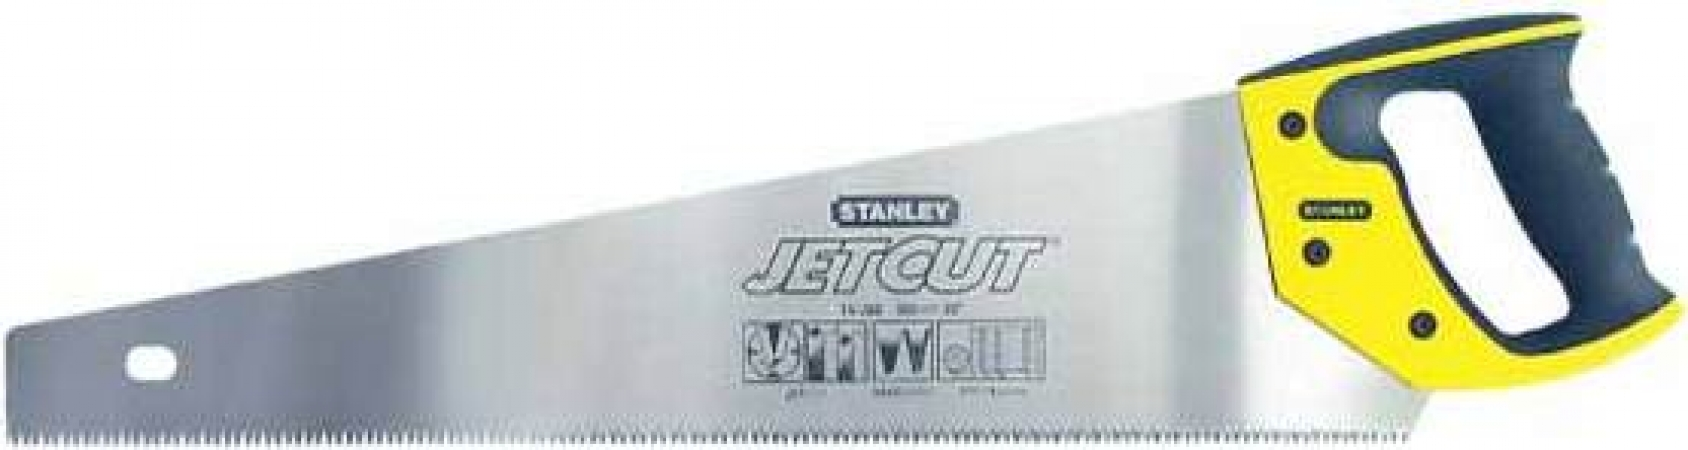 Stanley 2-15-288 Jet-Cut SP